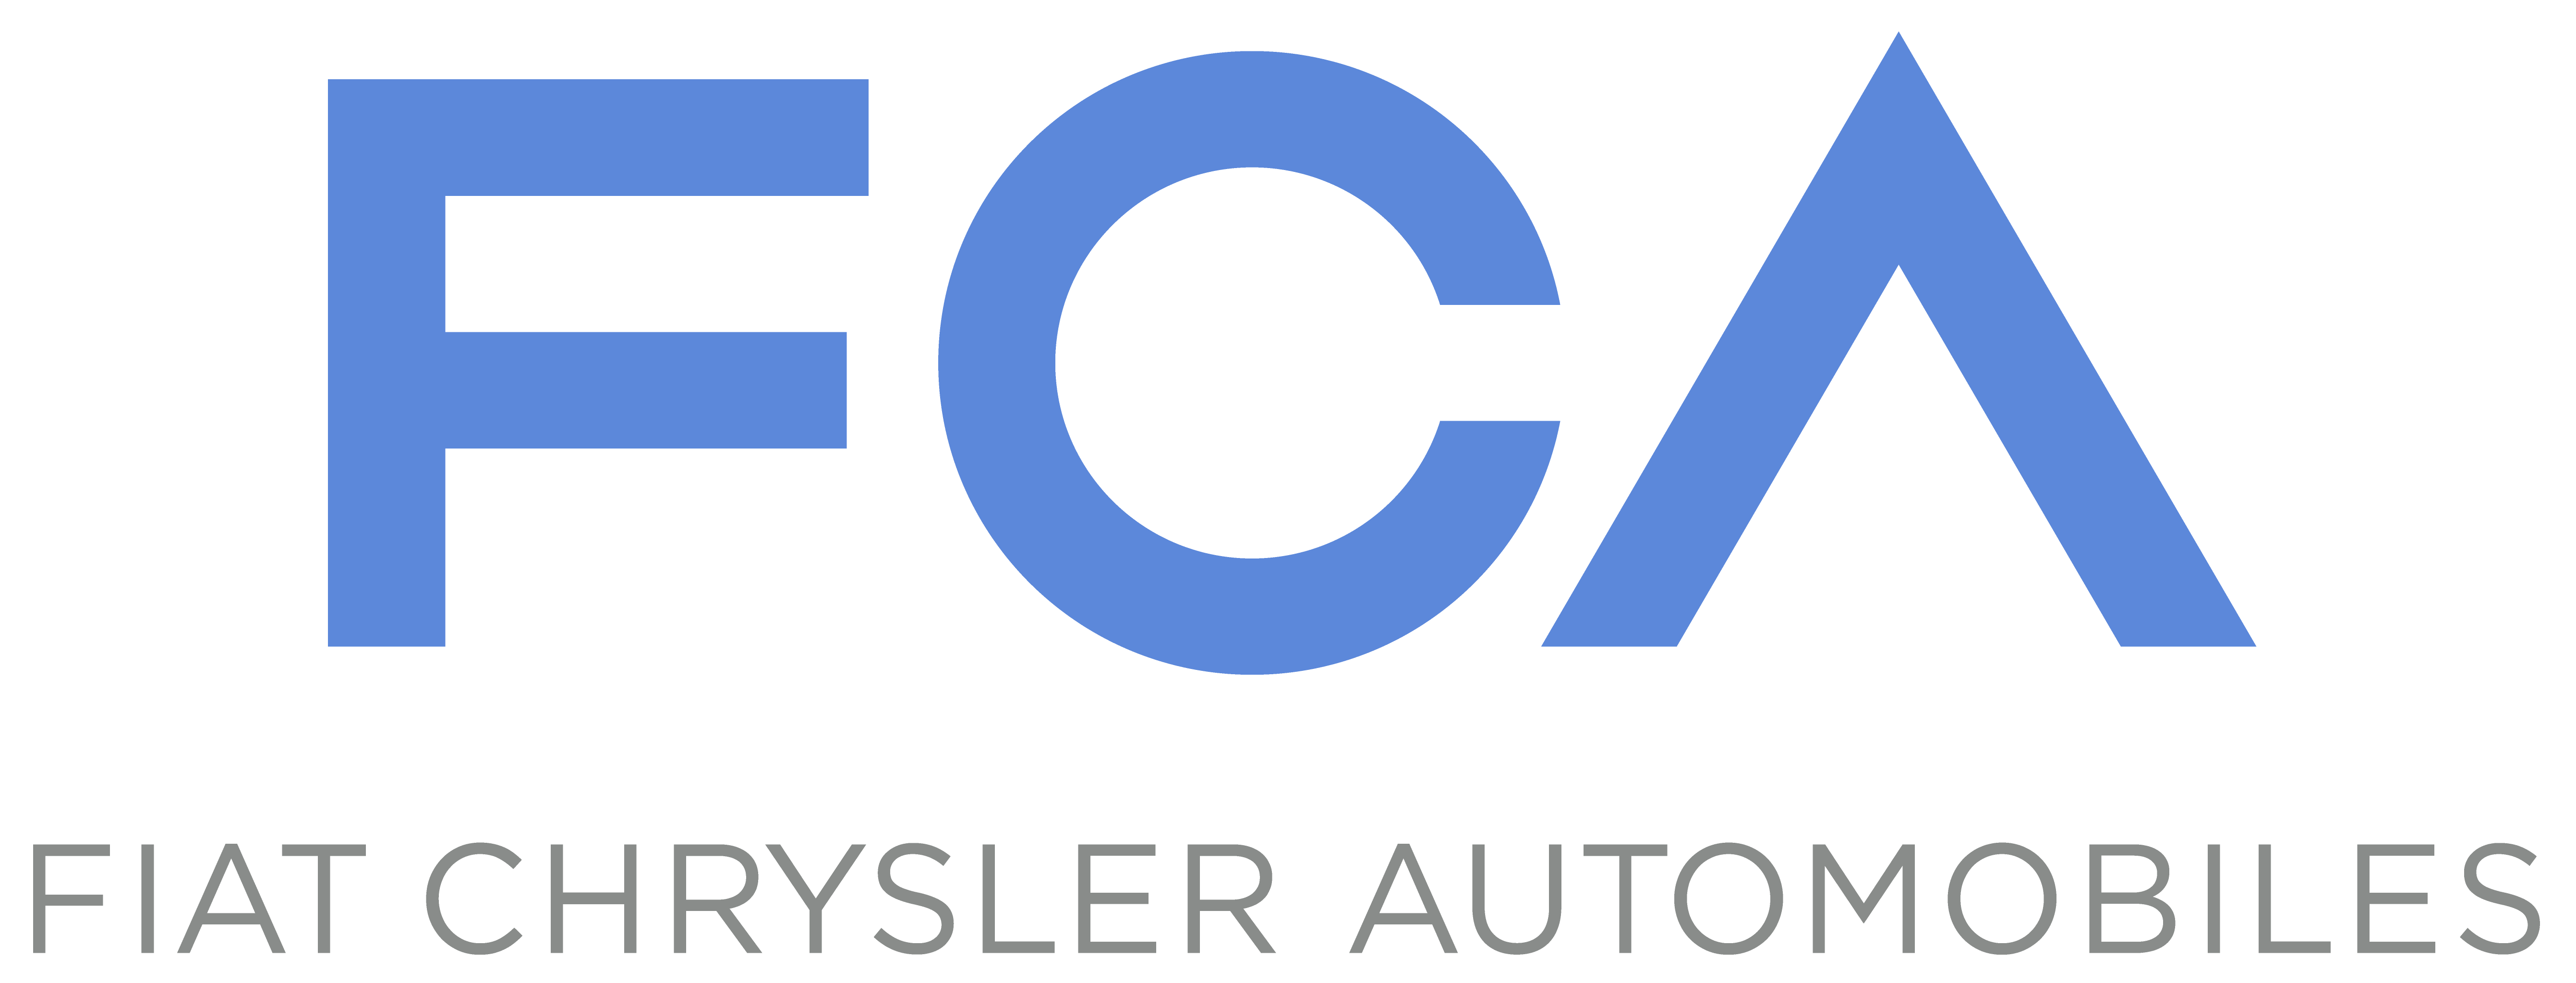 Ford · FCA Group